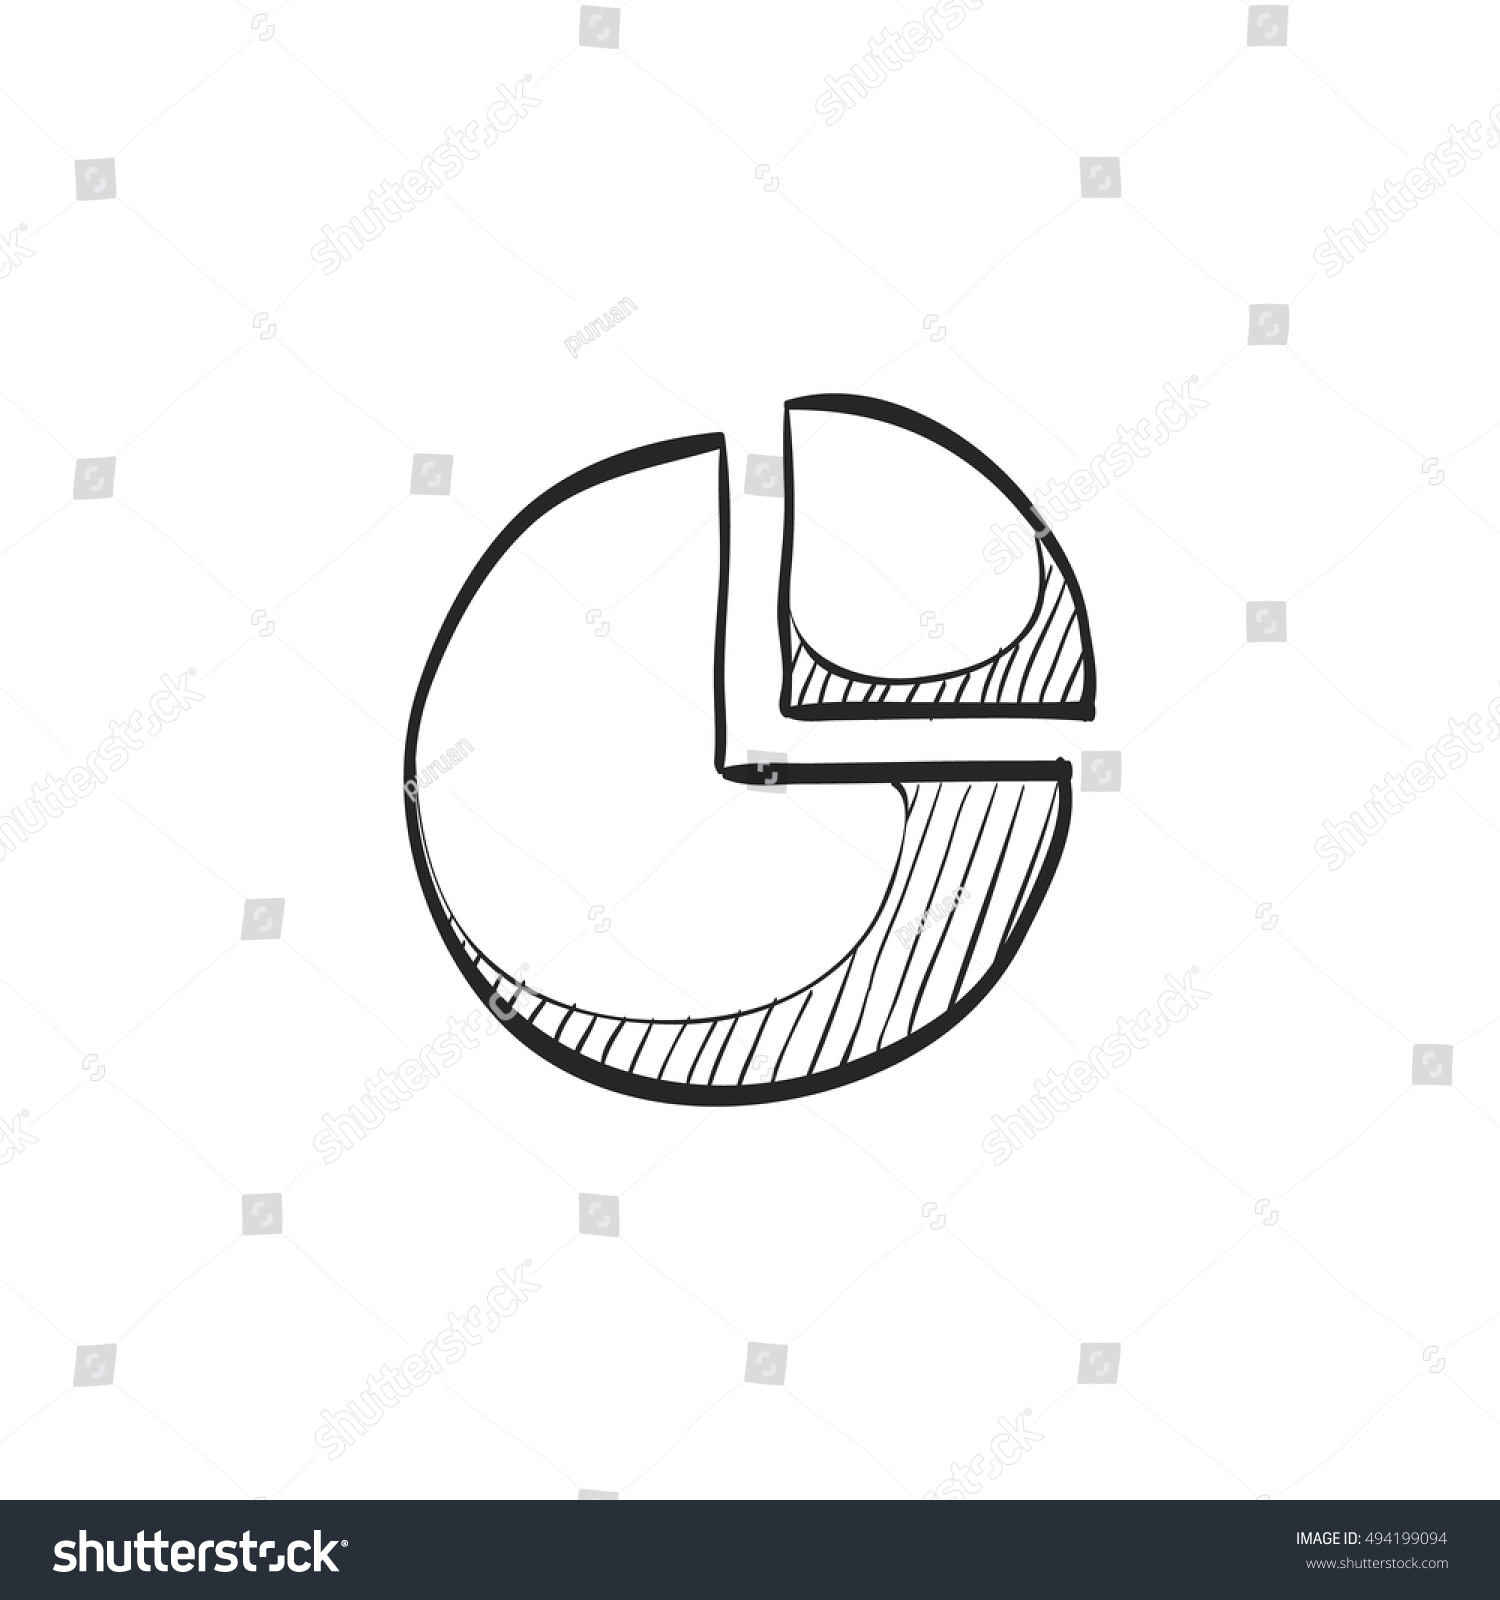 Pie chart icon doodle sketch lines stock vector 494199094 shutterstock pie chart icon in doodle sketch lines data report information office financial number presentation nvjuhfo Choice Image